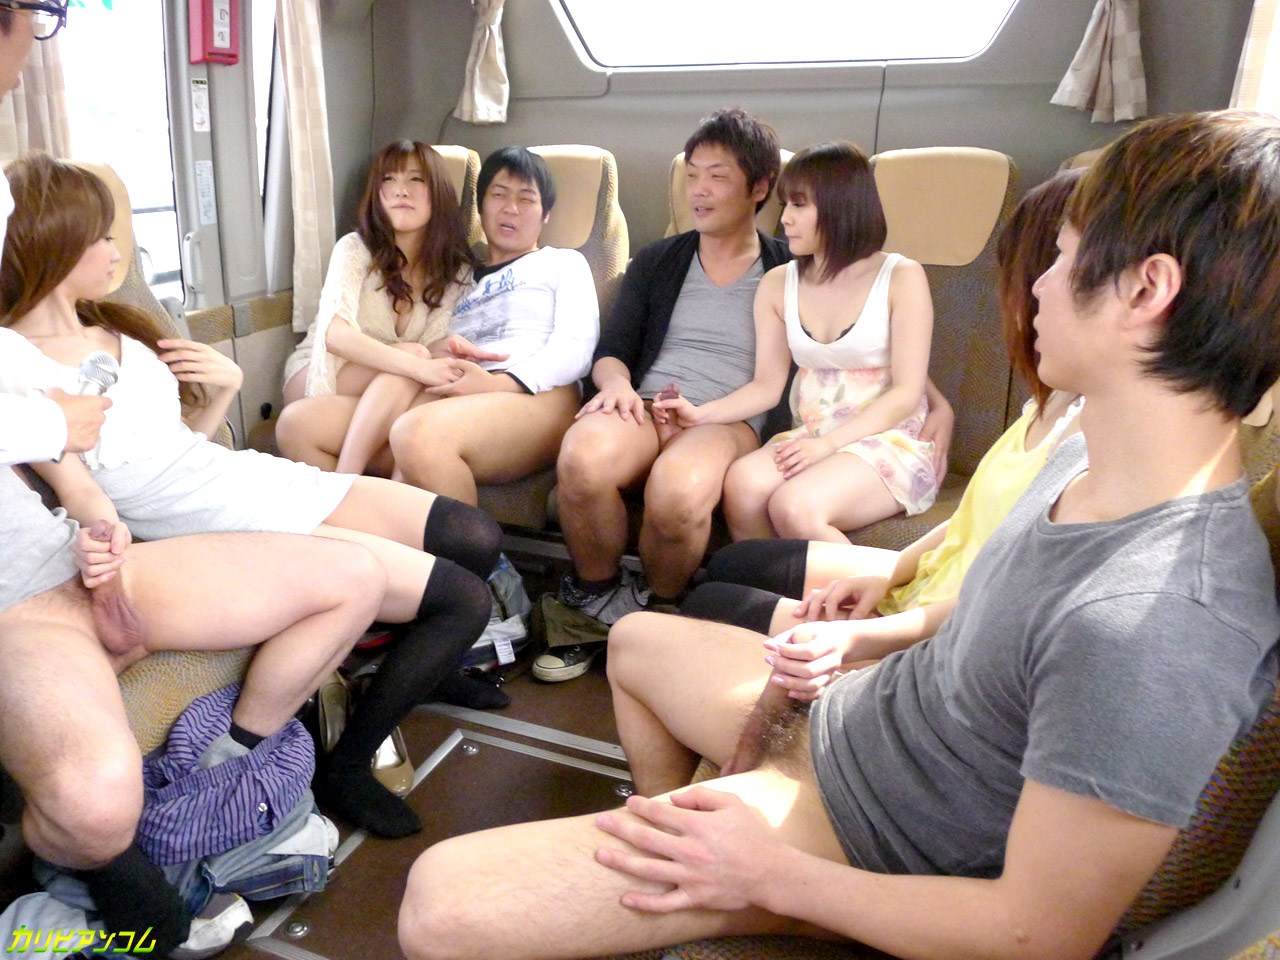 Teen asian girls on bus